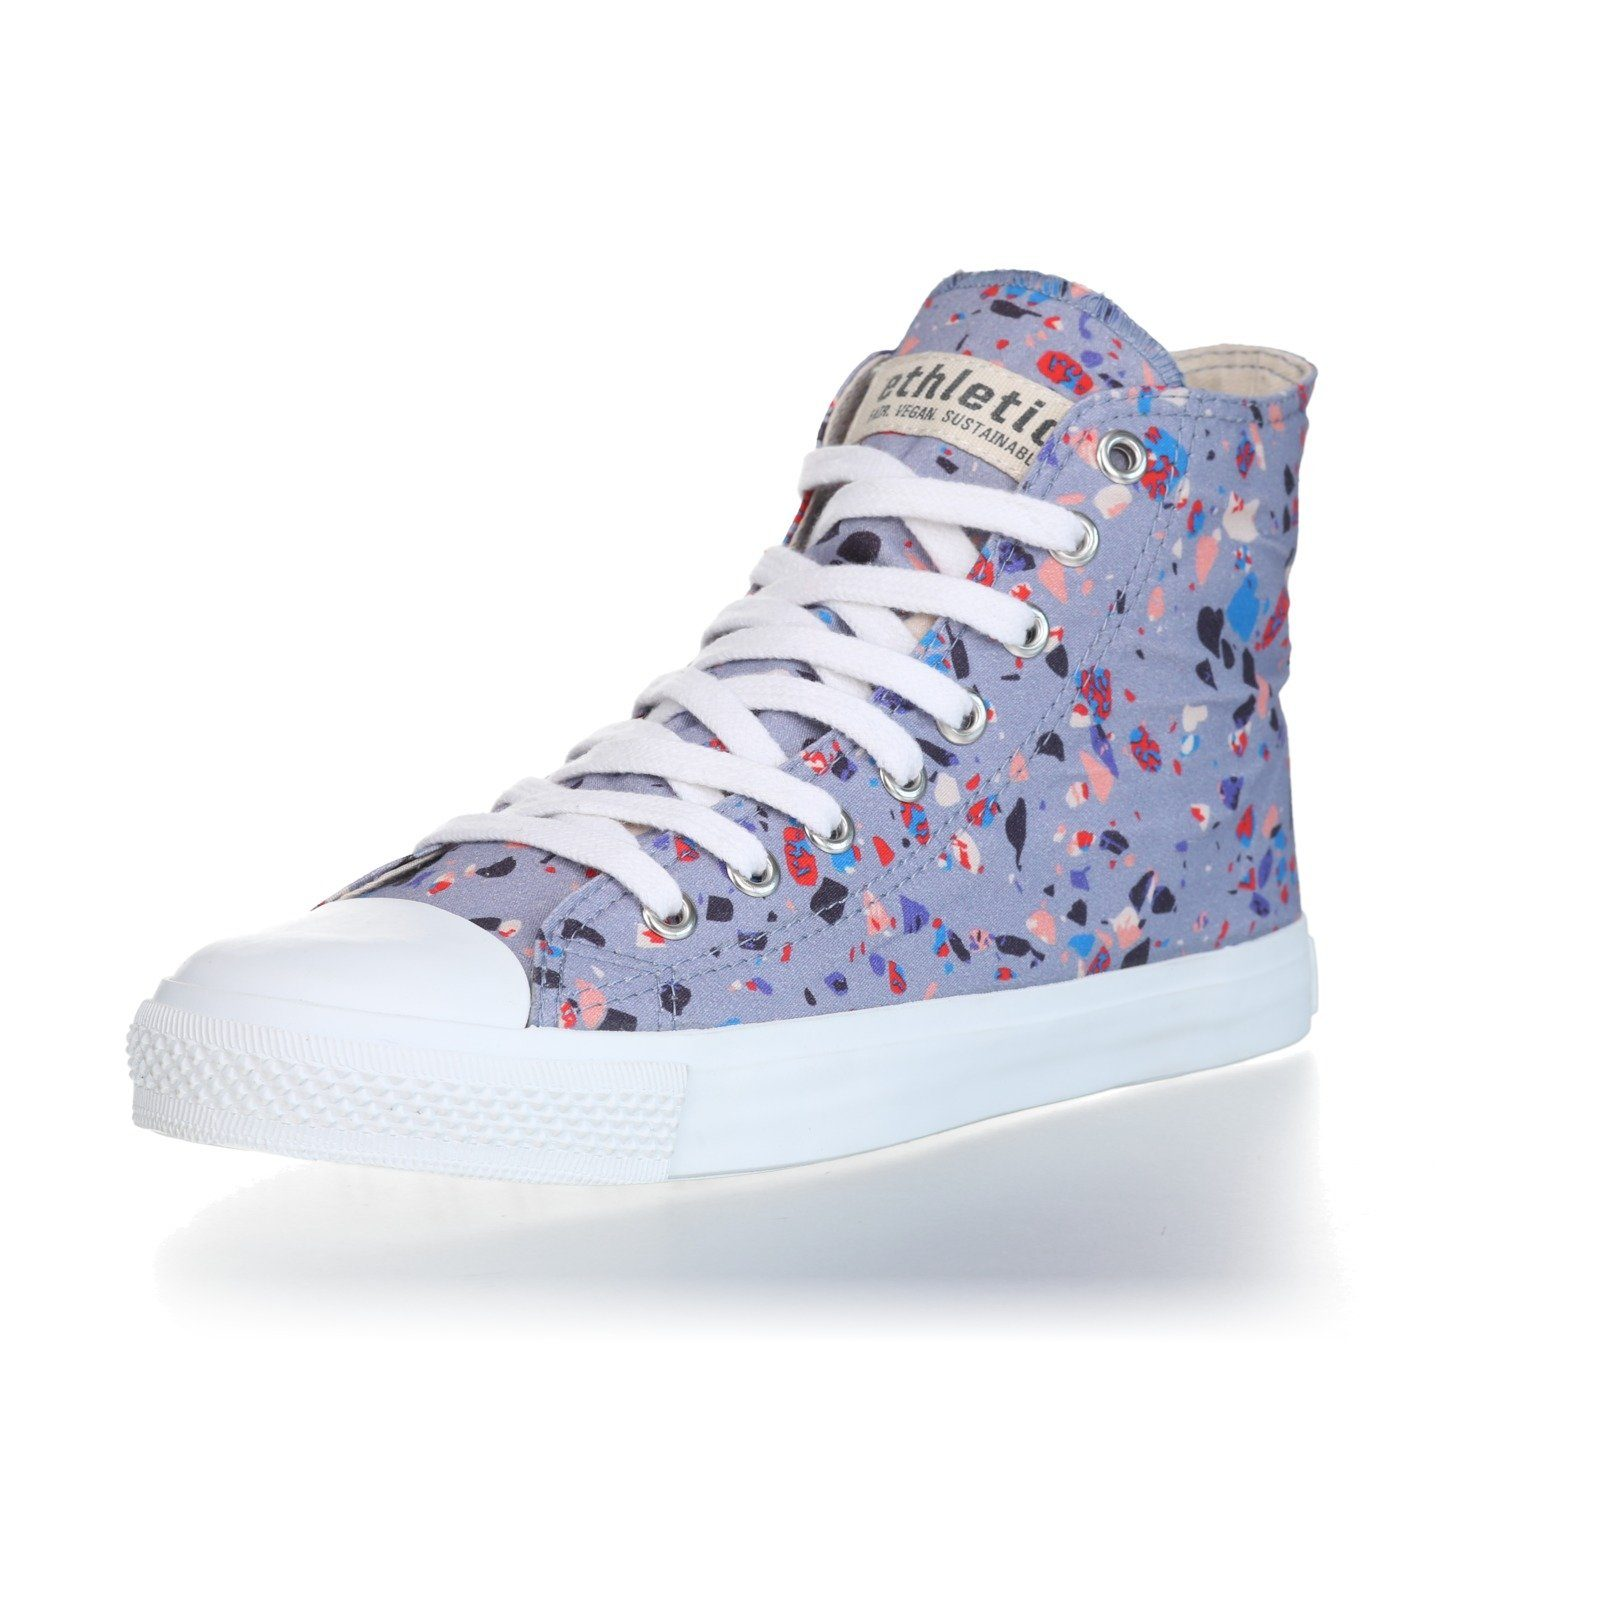 ETHLETIC Turnschuhe aus nachwachsenden Rohstoffen White Cap Hi Cut Collection 18 online kaufen  Terrazzo Blueberry | Just